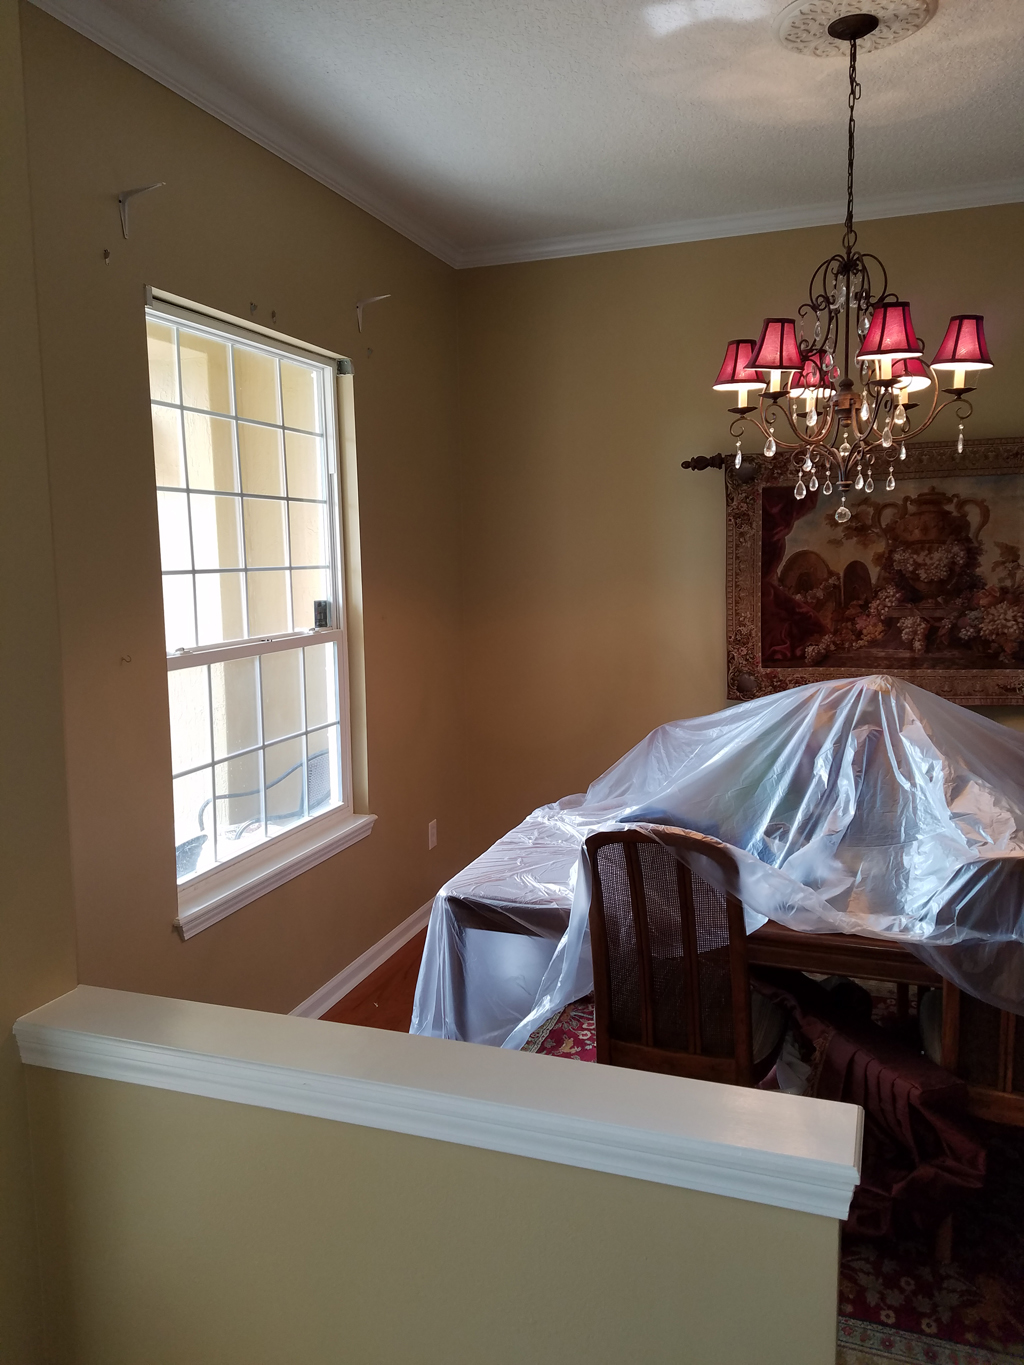 Home interior painting project off of hodges blvd - Interior painting jacksonville fl ...